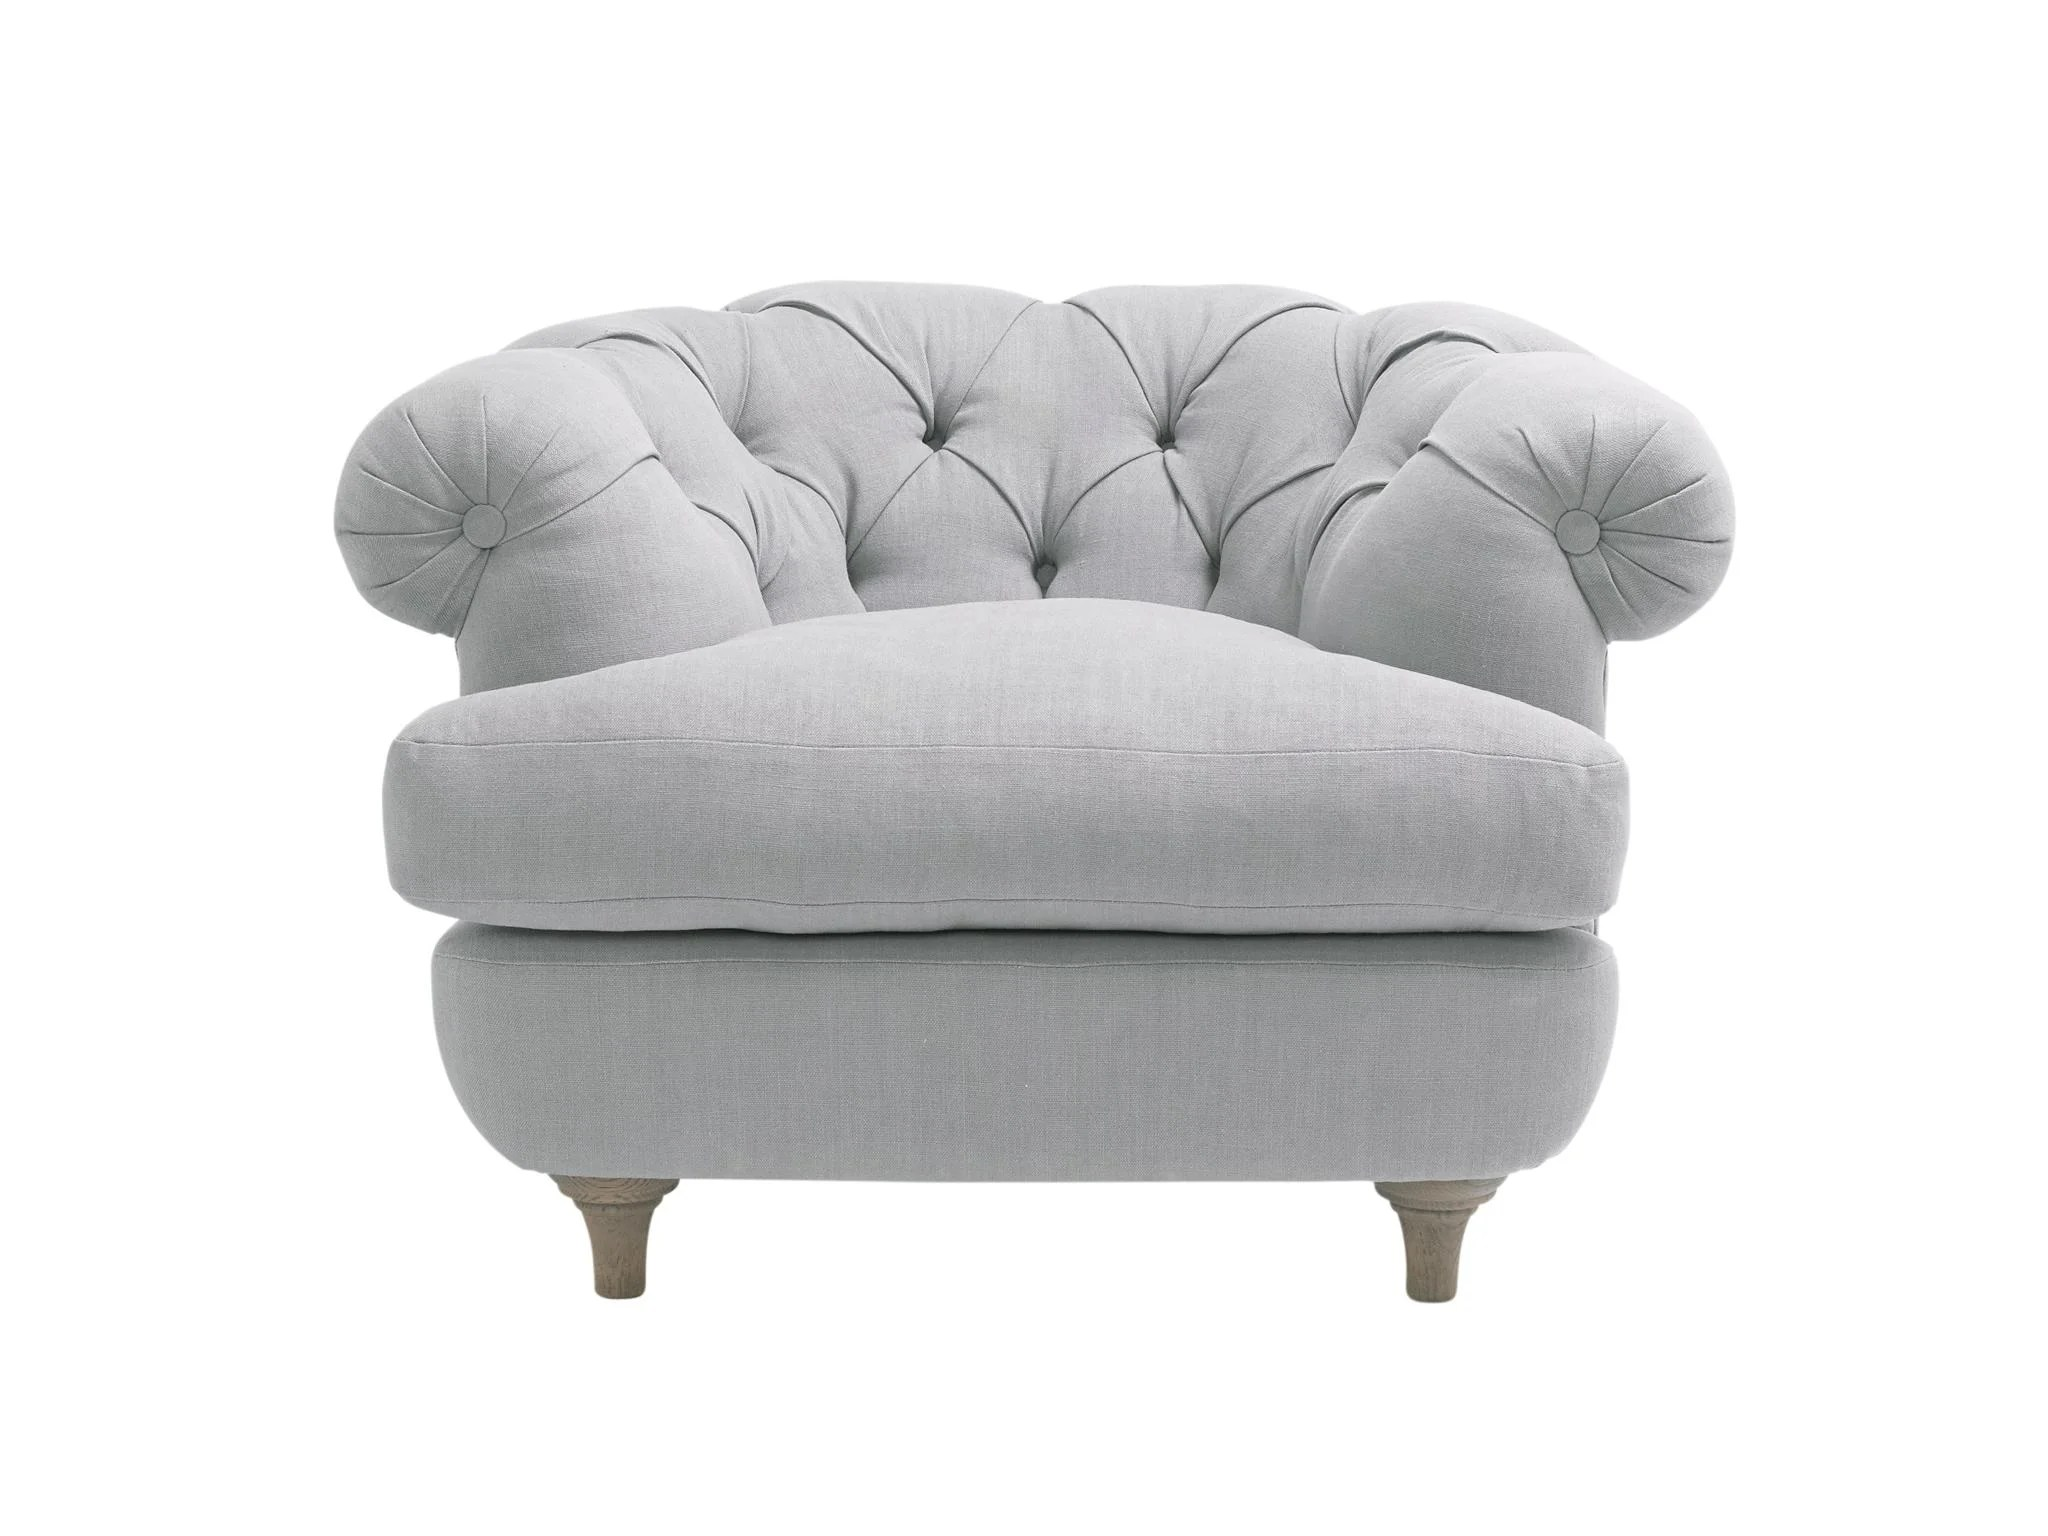 tv chair ikea batman for adults 10 best armchairs the independent as with all of loaf s sofas and swagamuffin has exaggerated dimensions that give it a cosy overly plump appearance